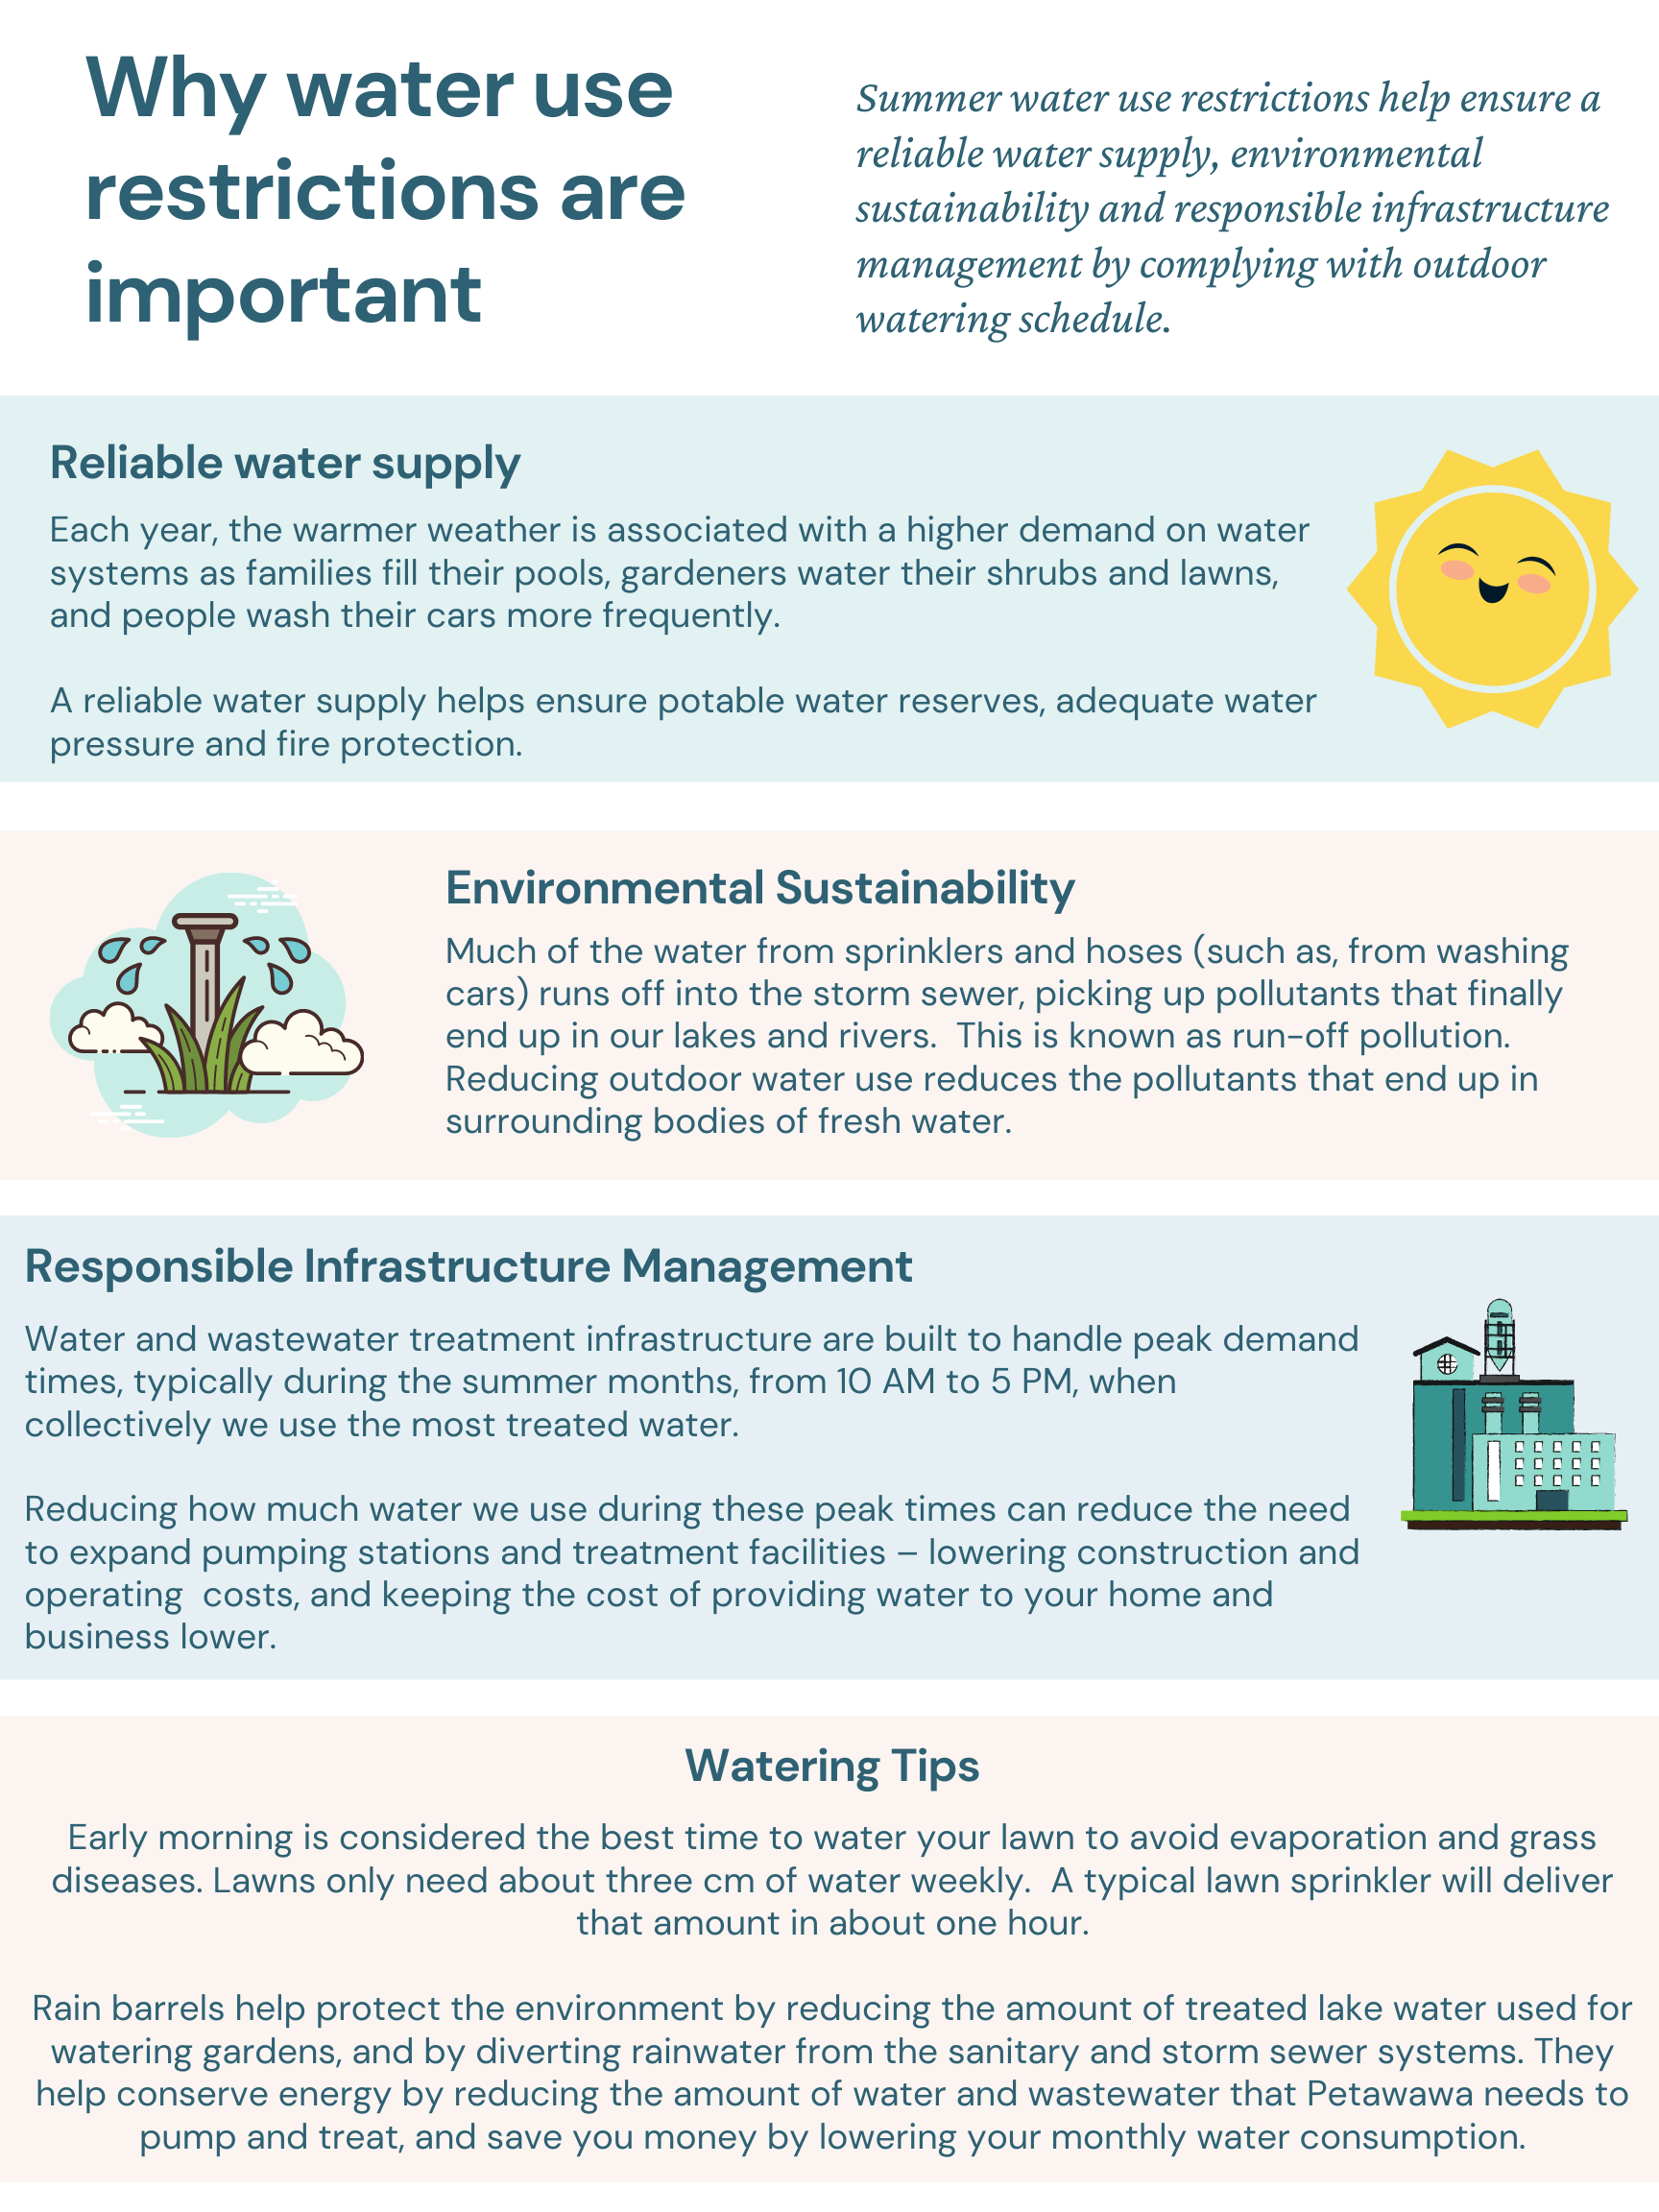 information graphic on the importance of water management